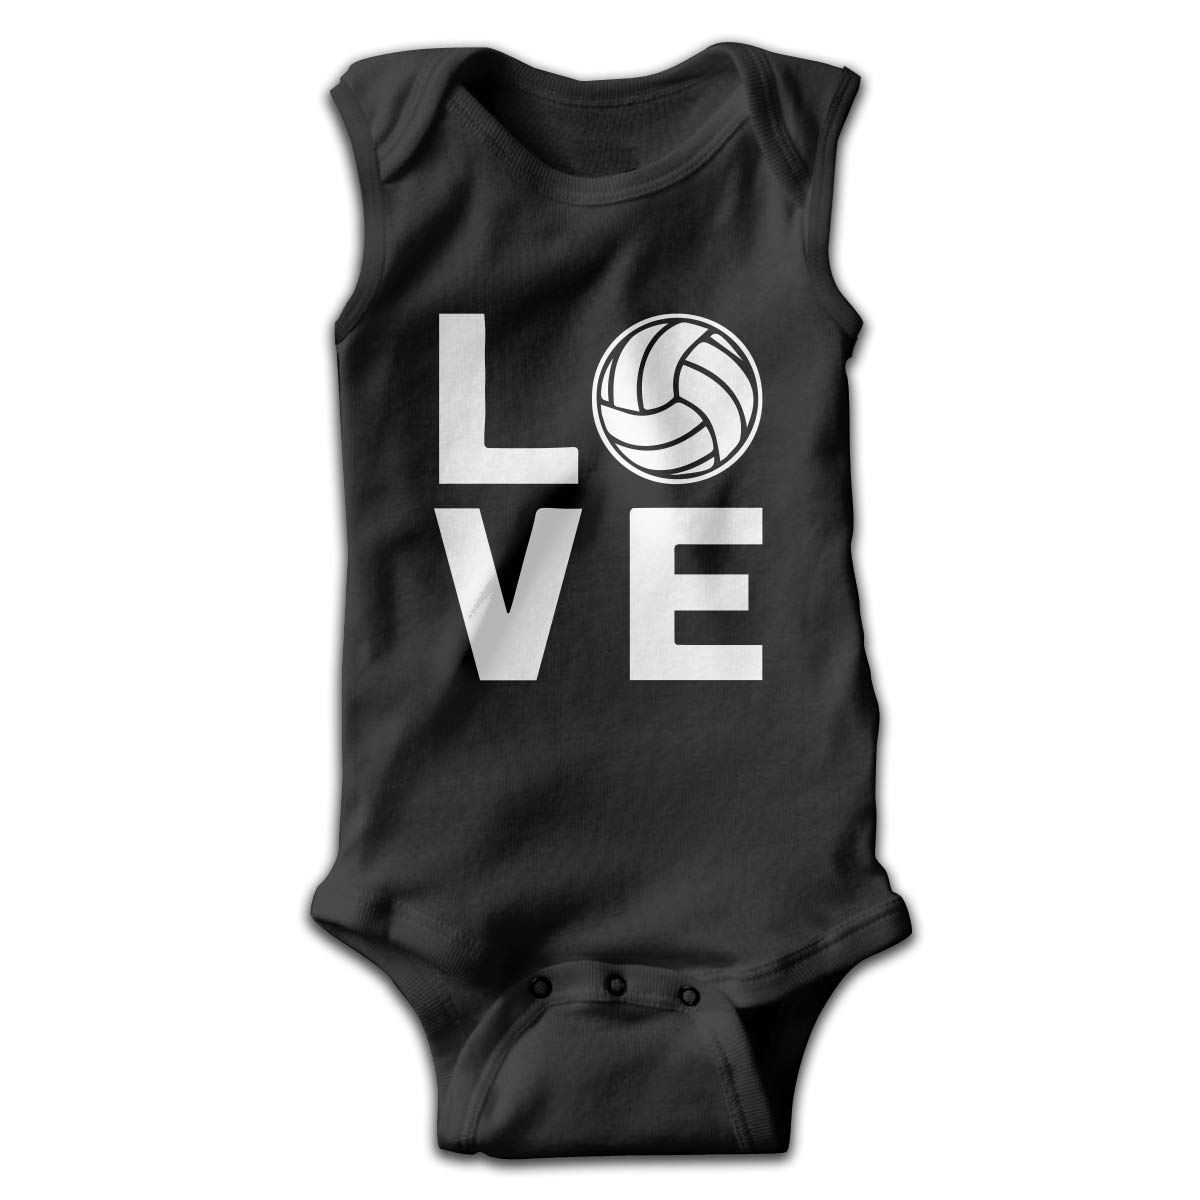 Love Volleyball Baby Newborn Crawling Suit Sleeveless Romper Bodysuit Rompers Jumpsuit